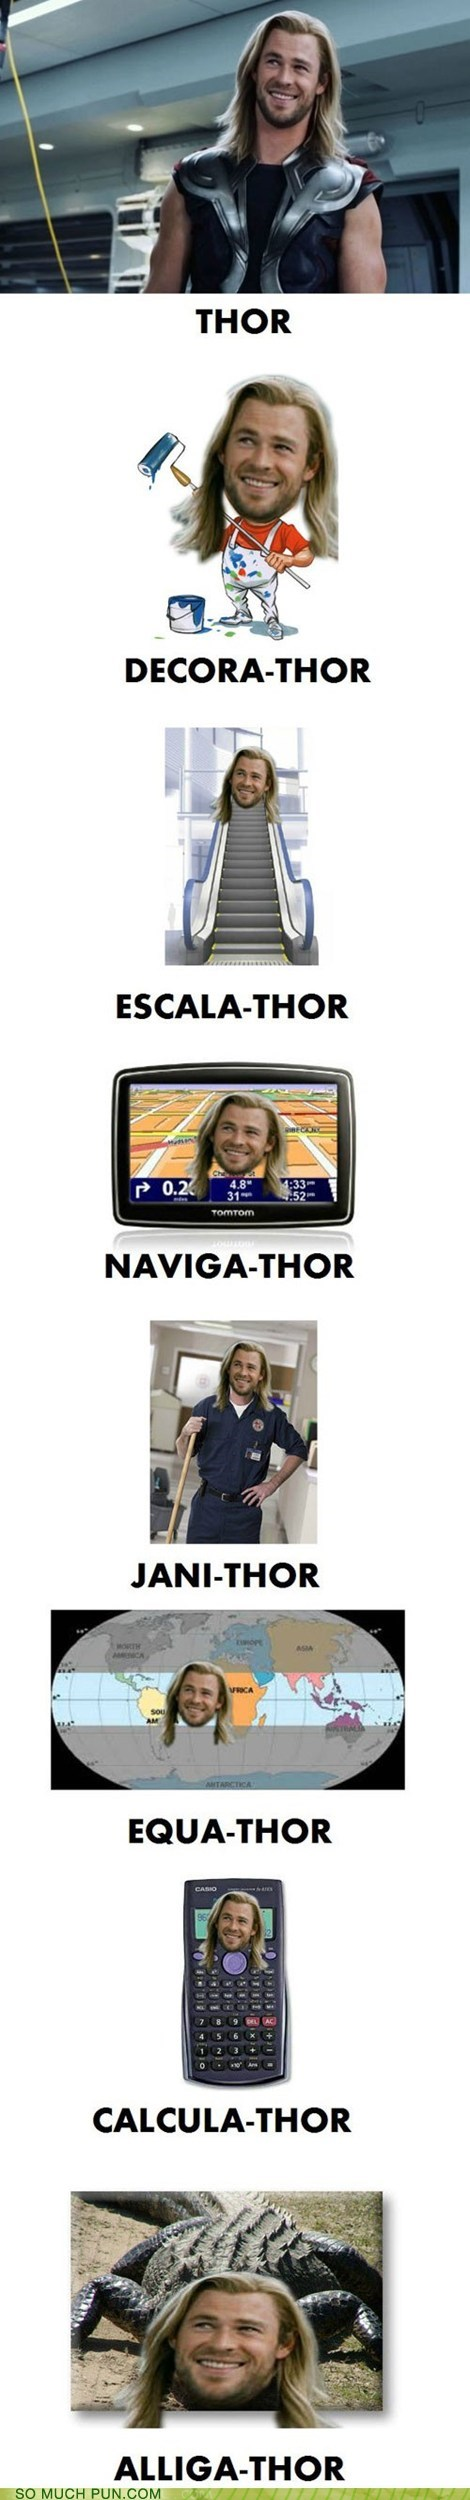 He Has a Very Thor-ough Resume